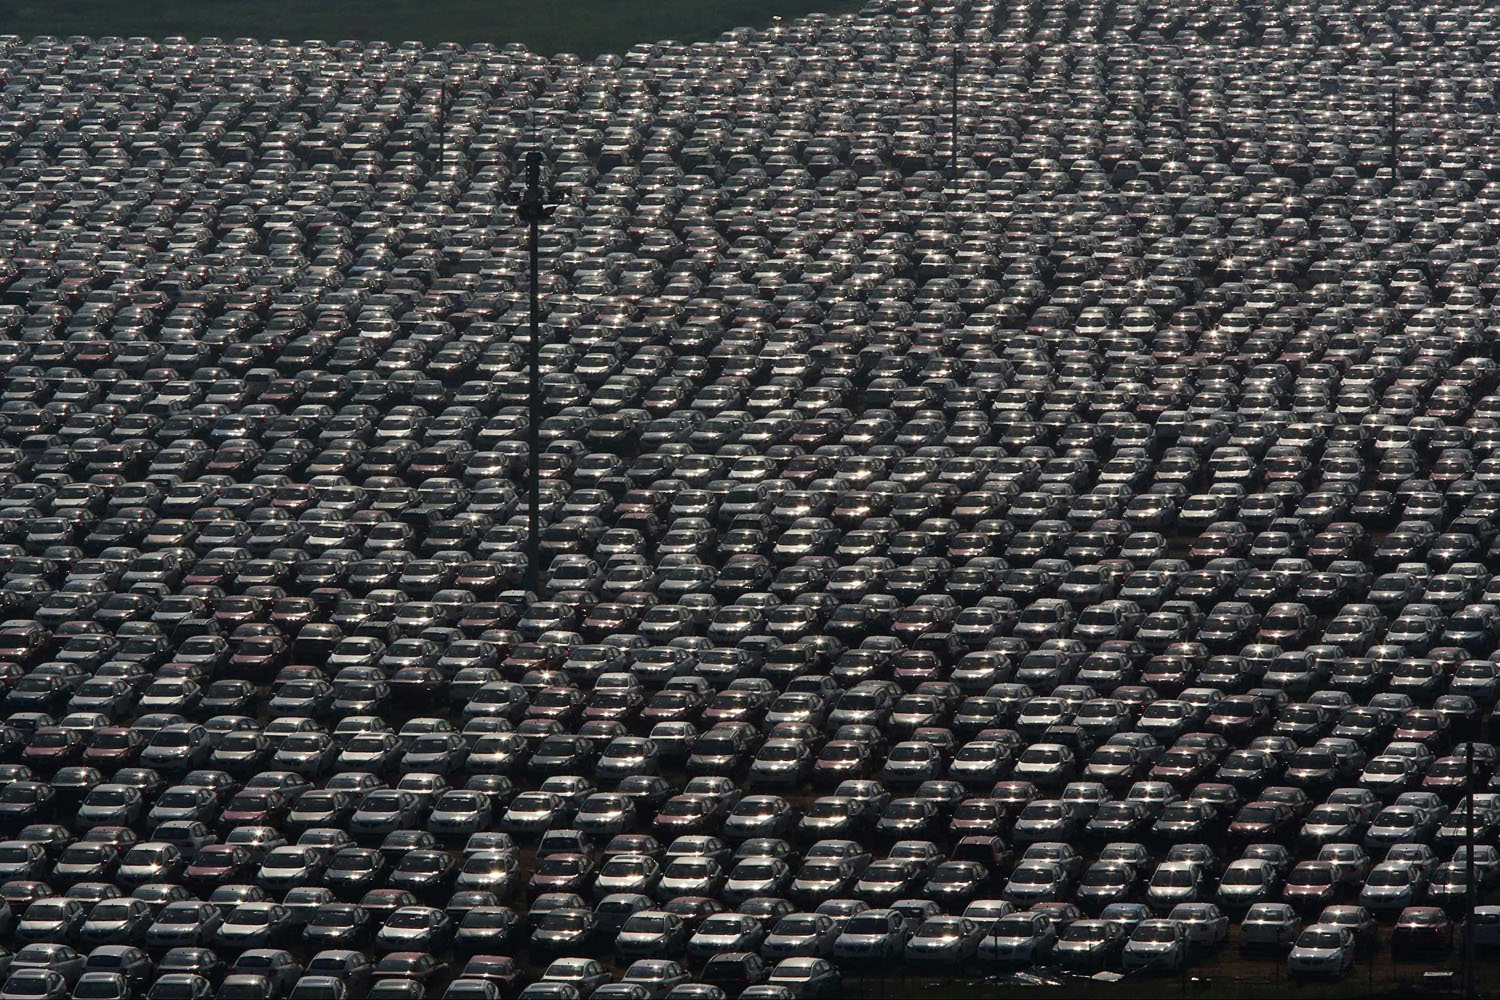 Jun. 24, 2014. New vehicles park at a Chinese automobile factory in Shenyang, Liaoning province.